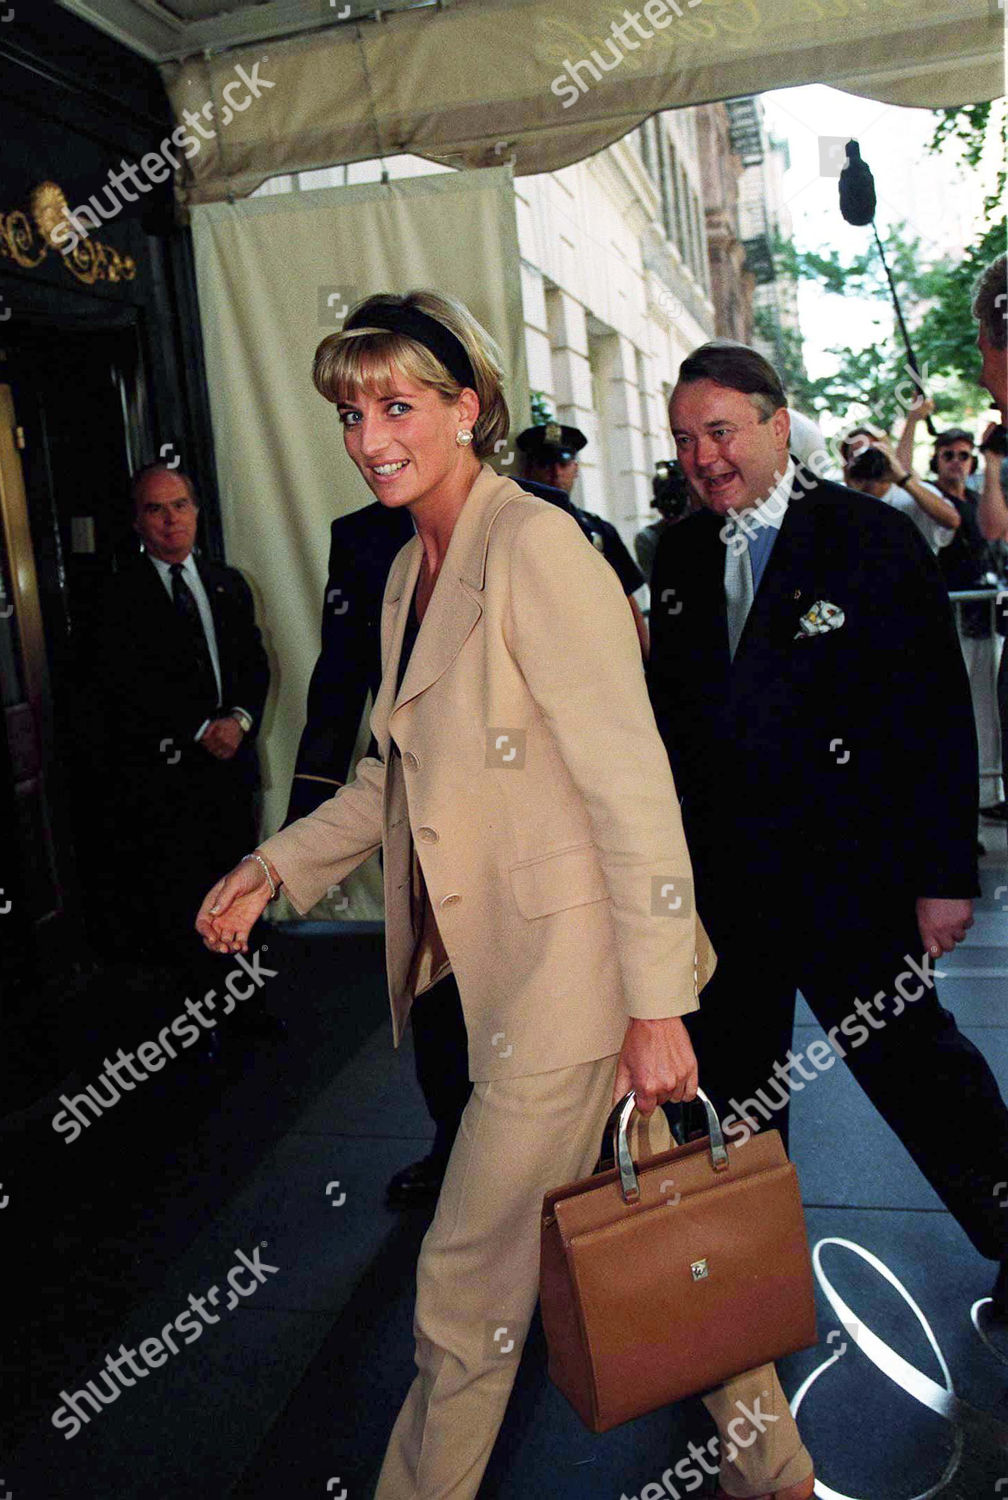 princess diana editorial stock photo stock image shutterstock https www shutterstock com editorial image editorial auction of princess dianas dresses at the carlyle hotel new york america jun 1997 275787q